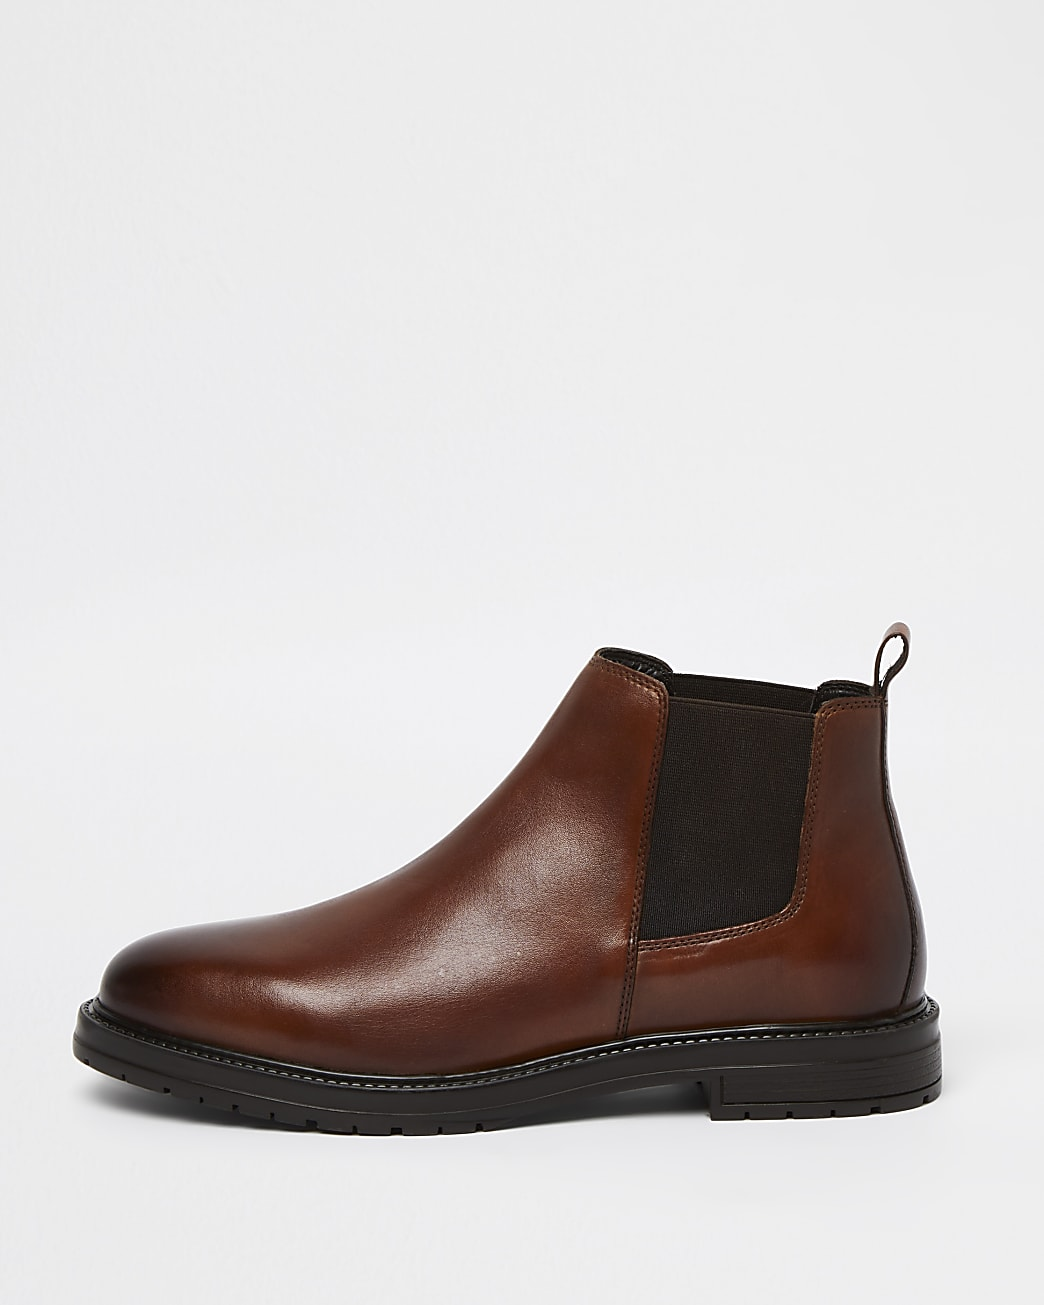 Brown leather low chelsea boots